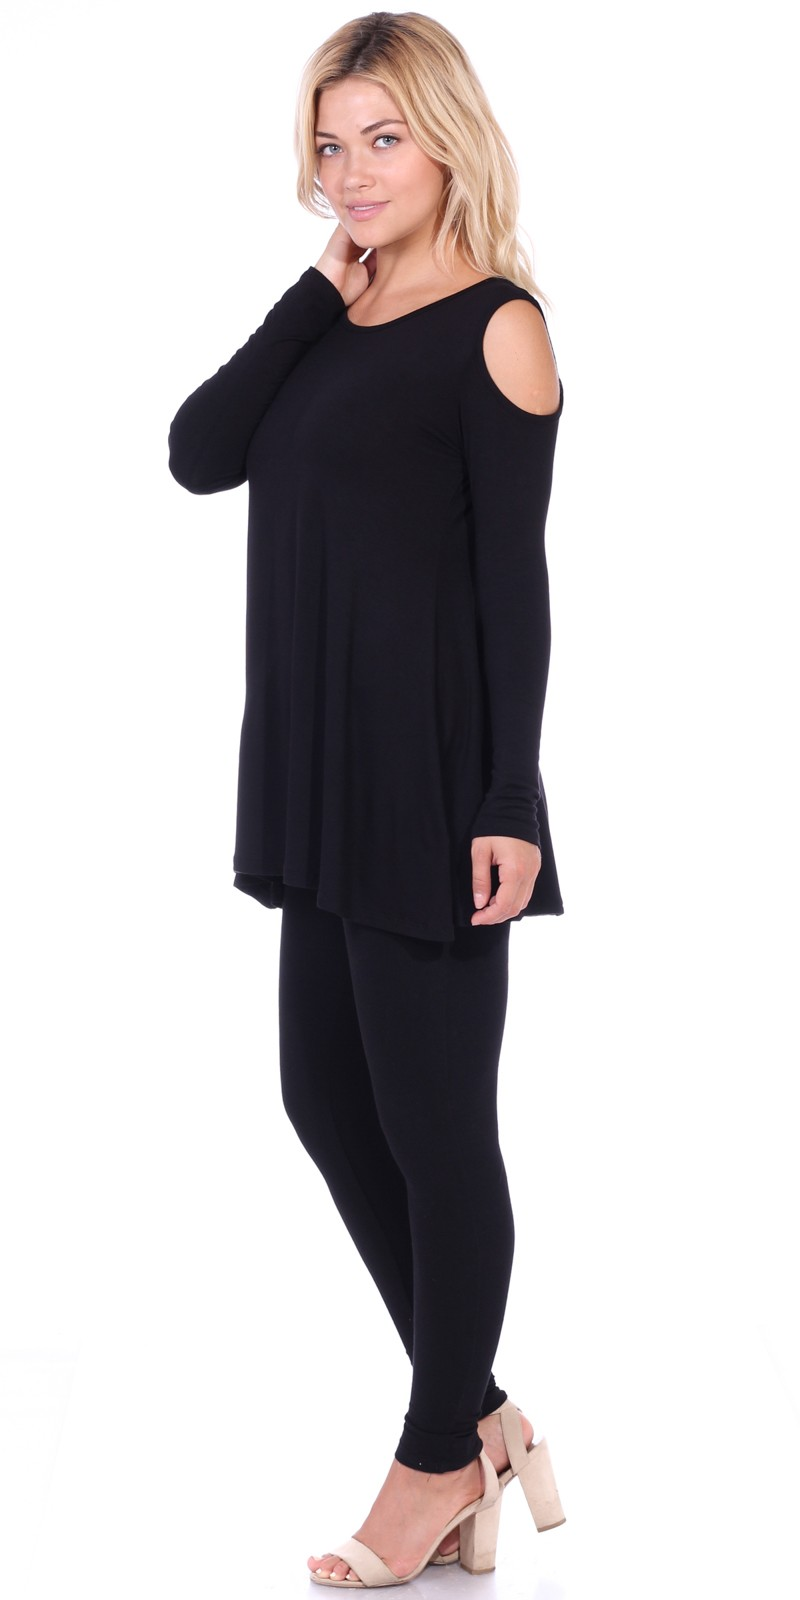 Tunics for Tall Women - Our collection of long tunics for tall women pairs perfectly with our long hitseparatingfiletransfer.tk tunics are made long enough to fit and flatter your figure. Choose from fabulous knitted tunics to fashionable printed tunics and more.